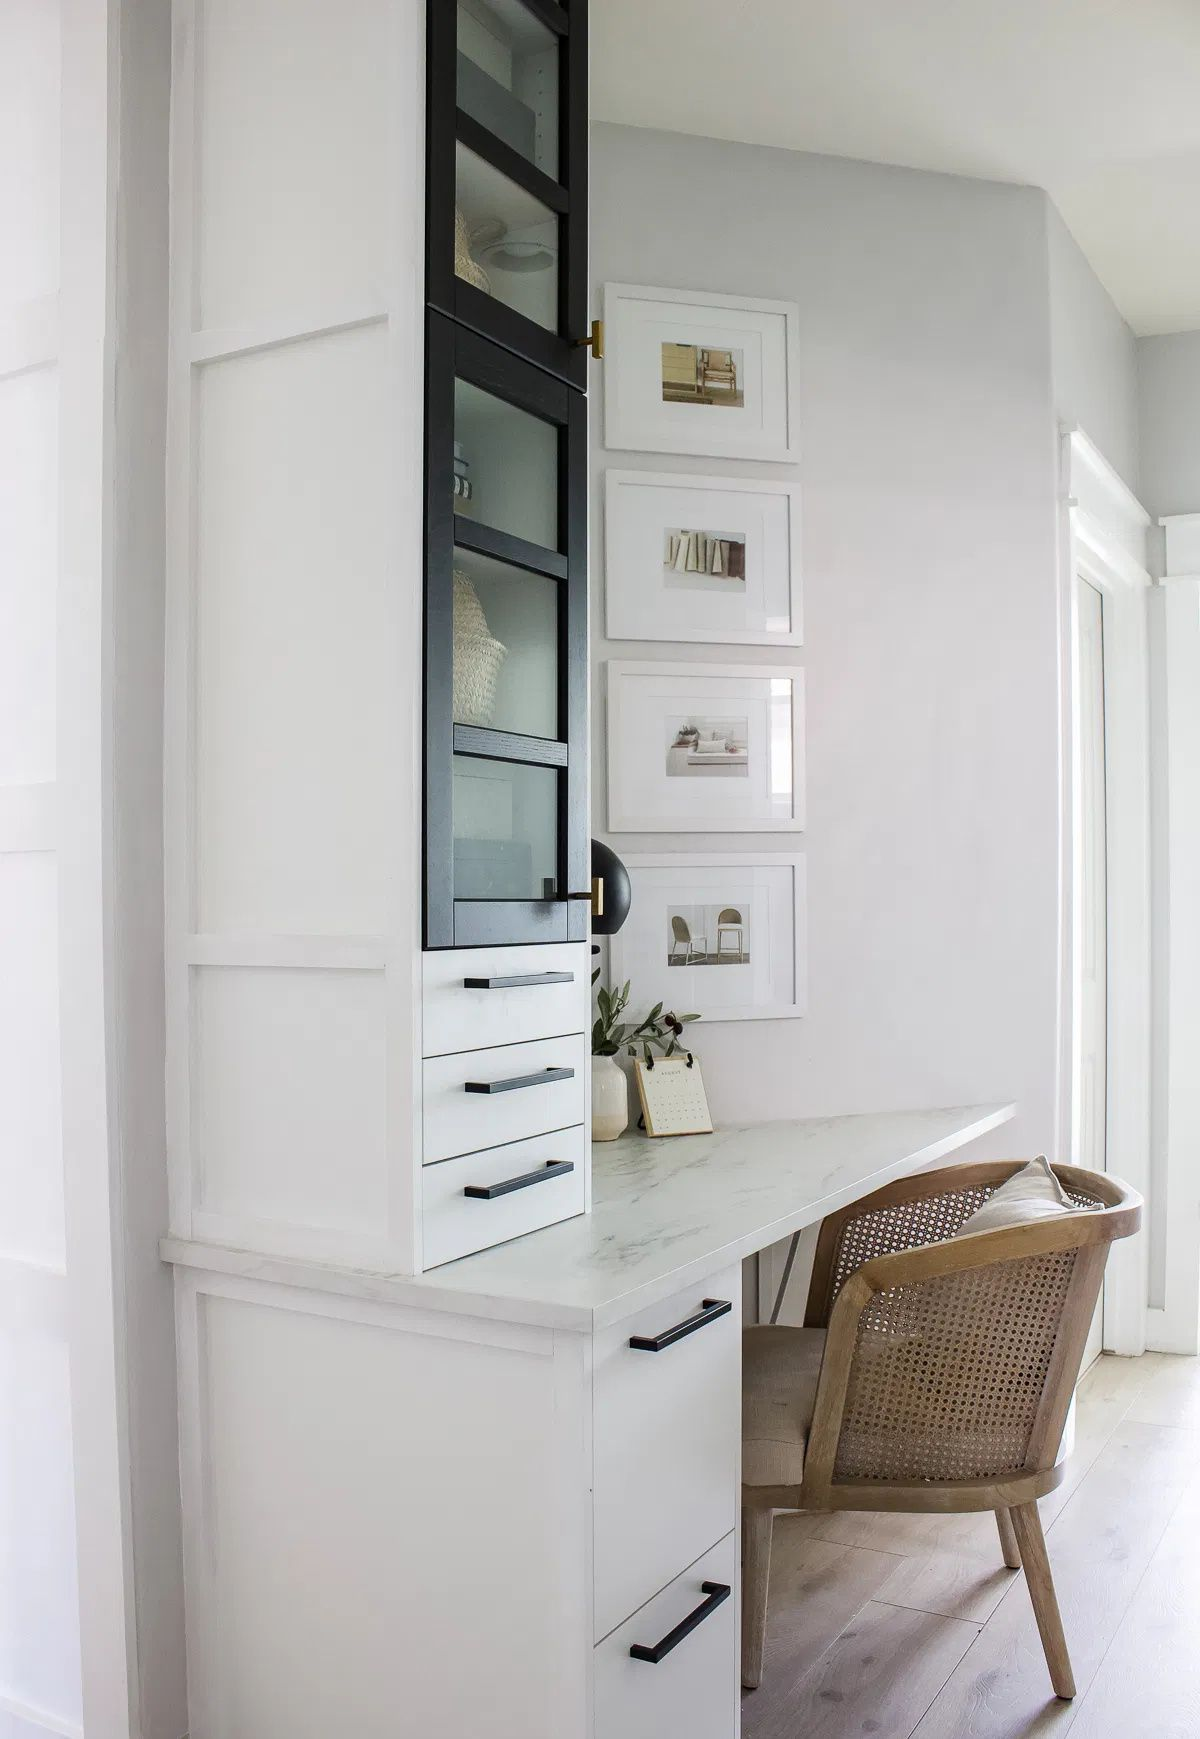 Small Home Office With Built In Ikea Cabinets Designed Simple In 2020 Ikea Cabinets Small Home Office Cabinet Design